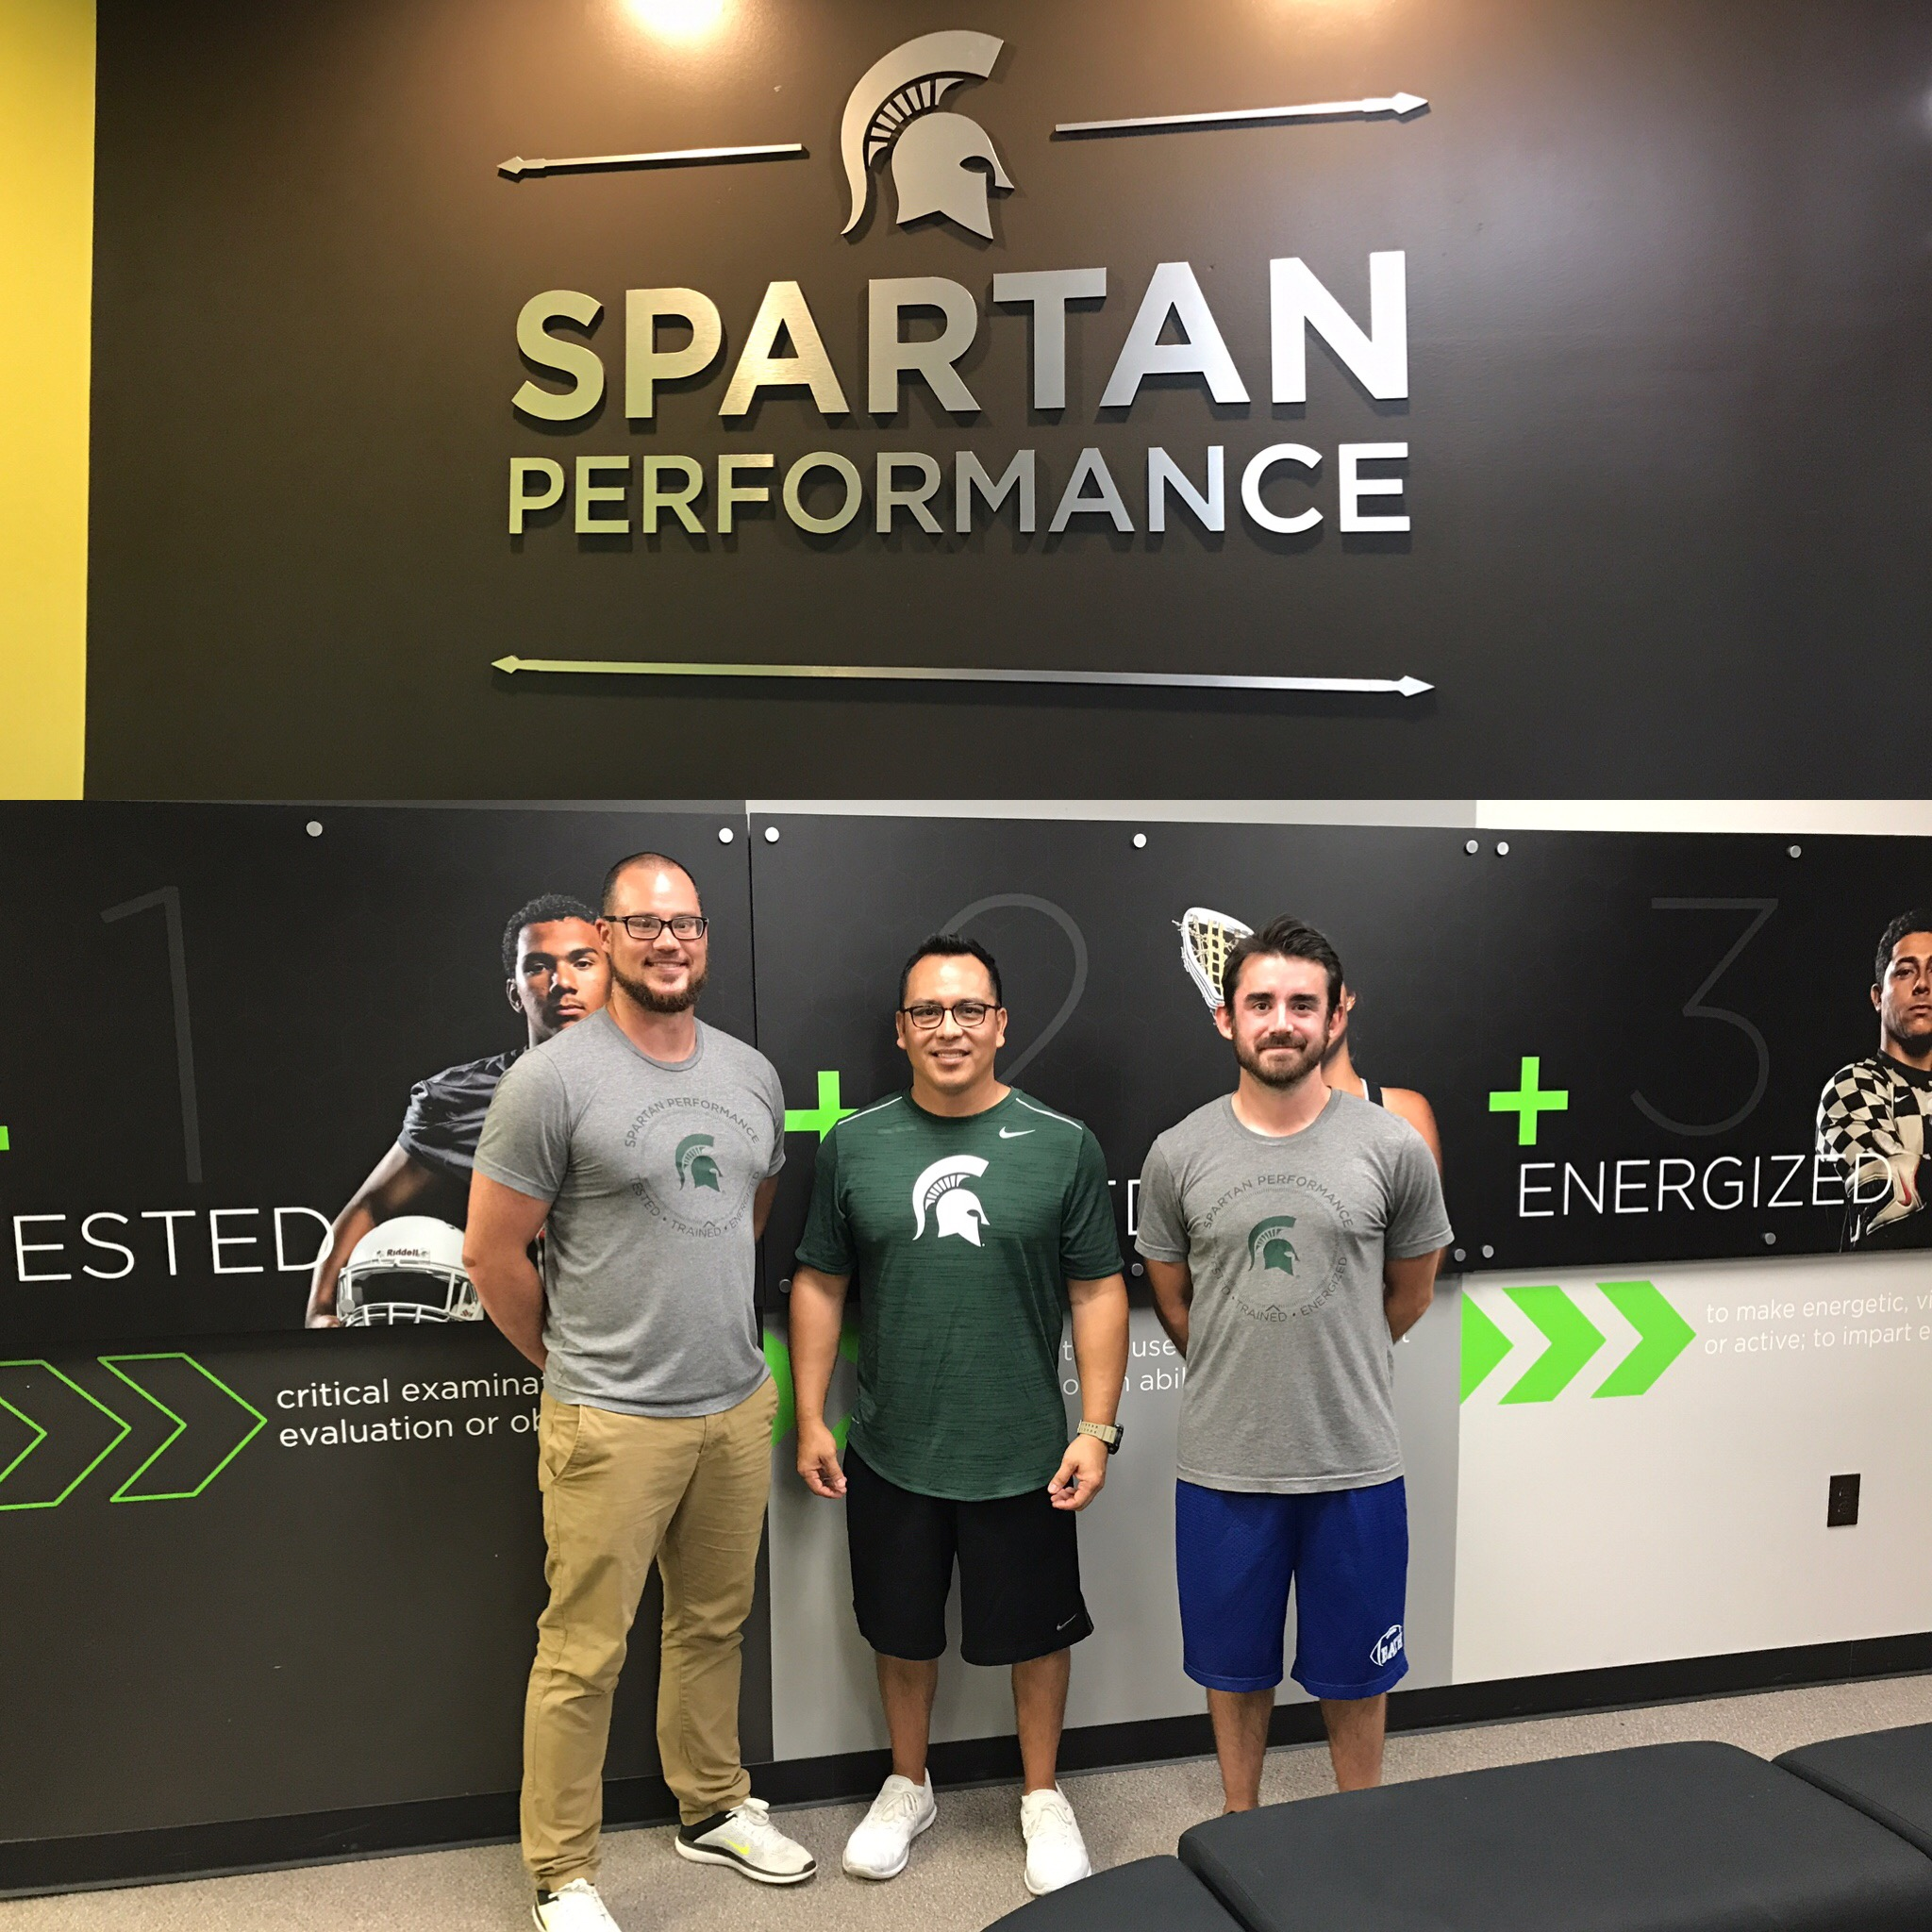 Michigan State Performance Training